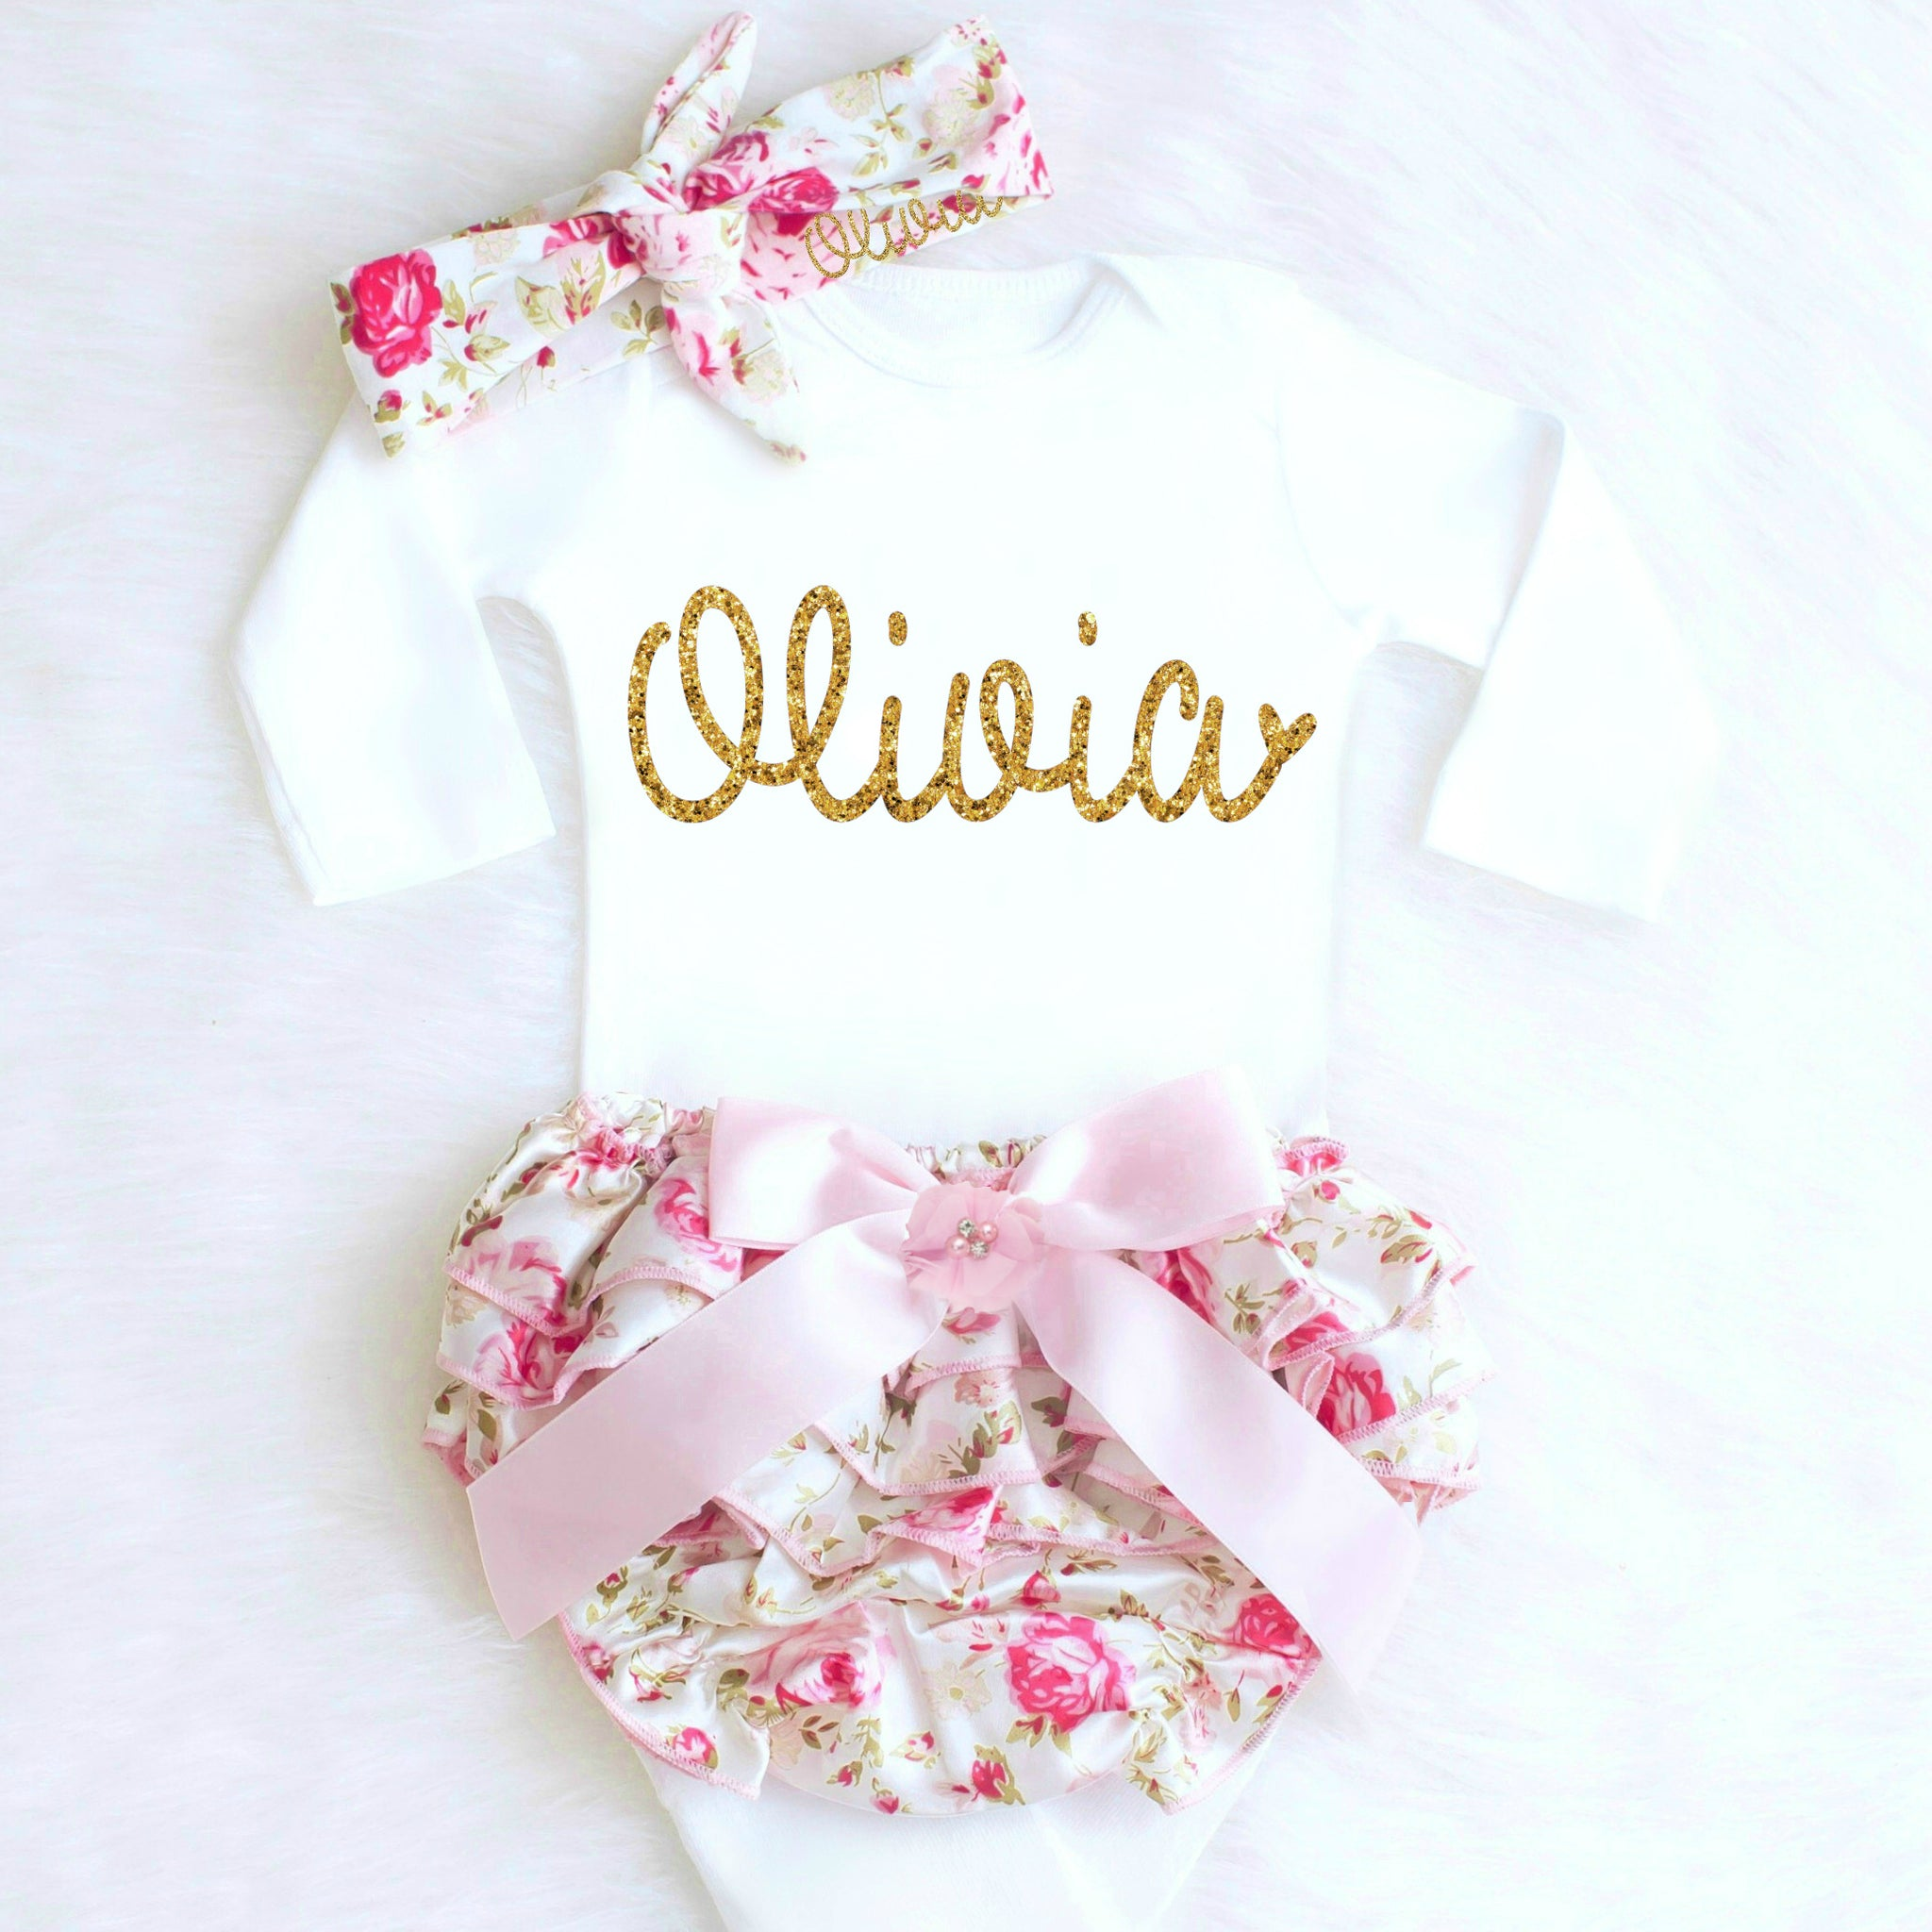 968b4bb55174 Personalized Baby Girl Going Home Outfit with Name